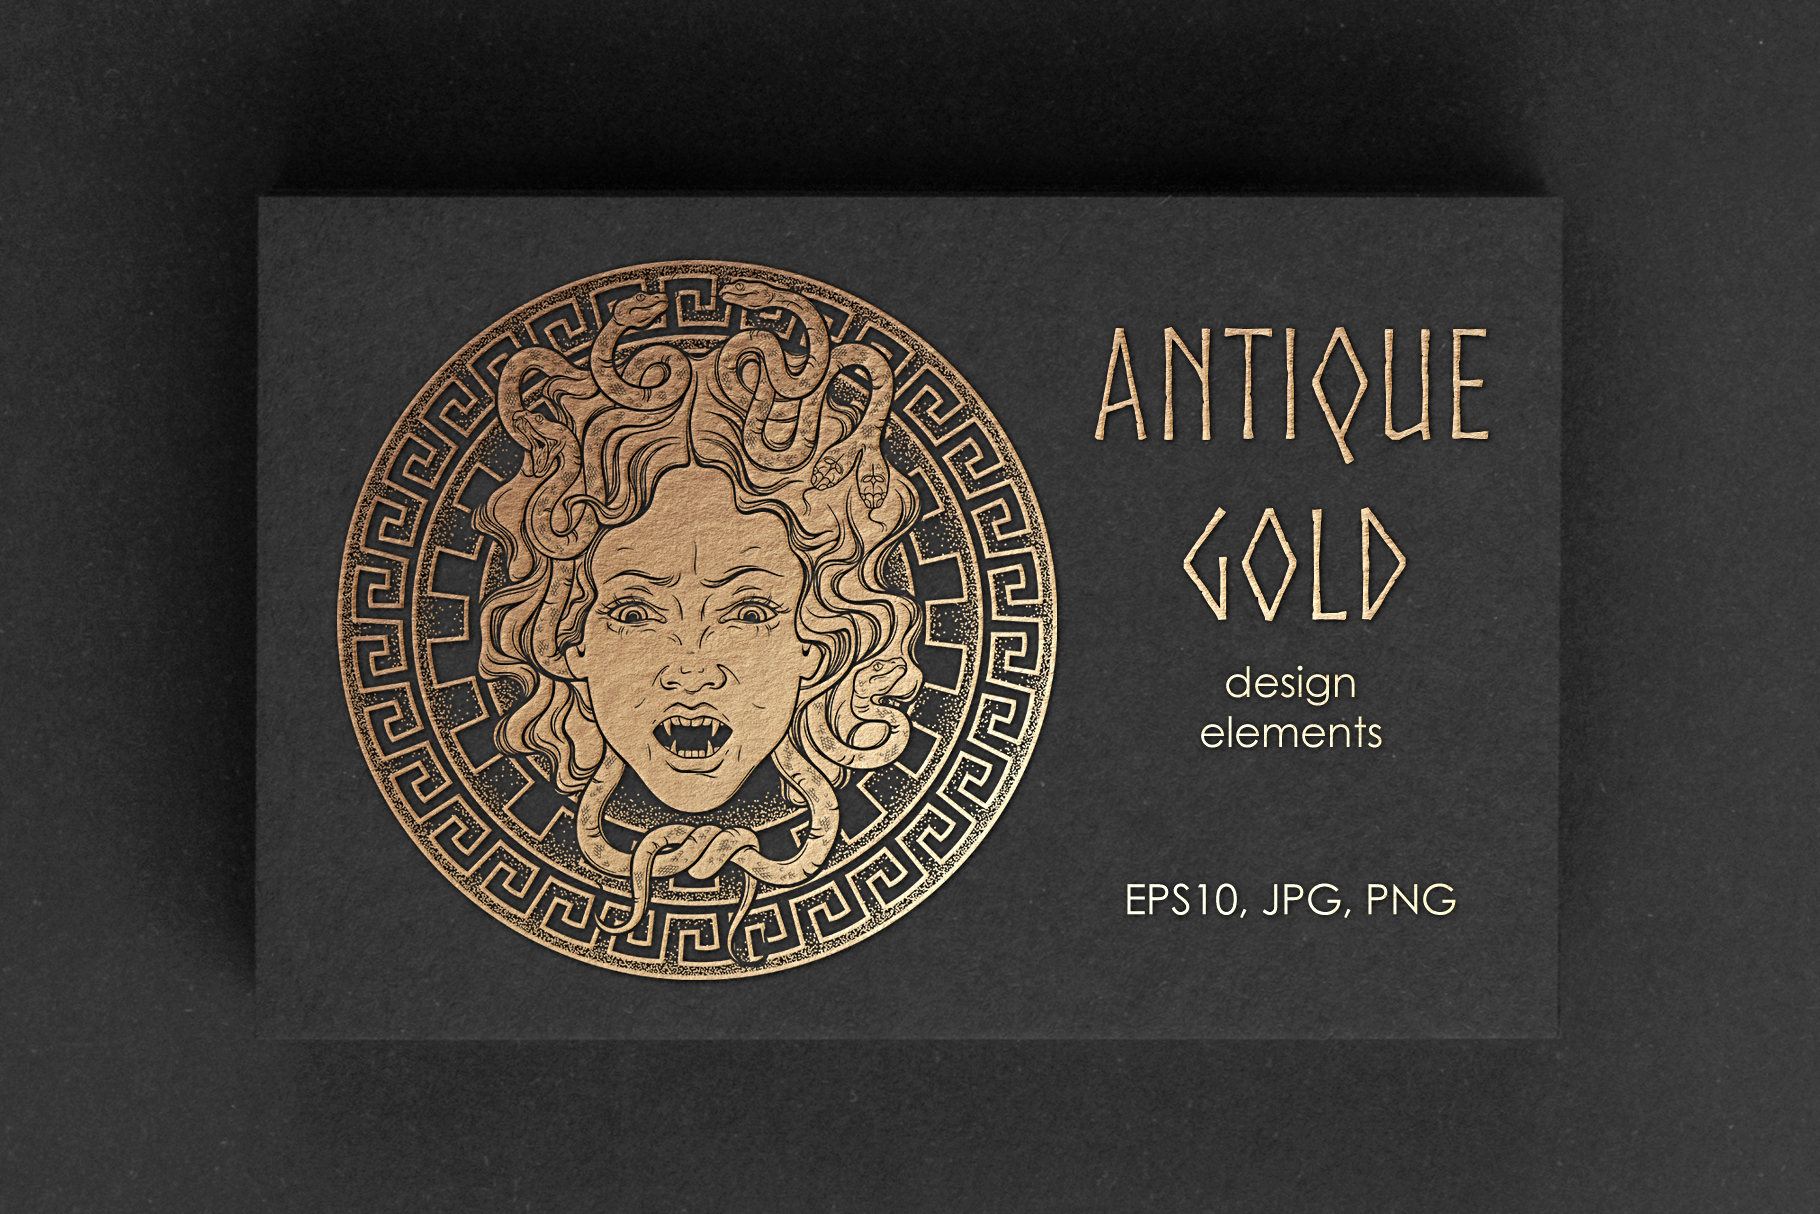 Antique Gold. Design elements example image 1